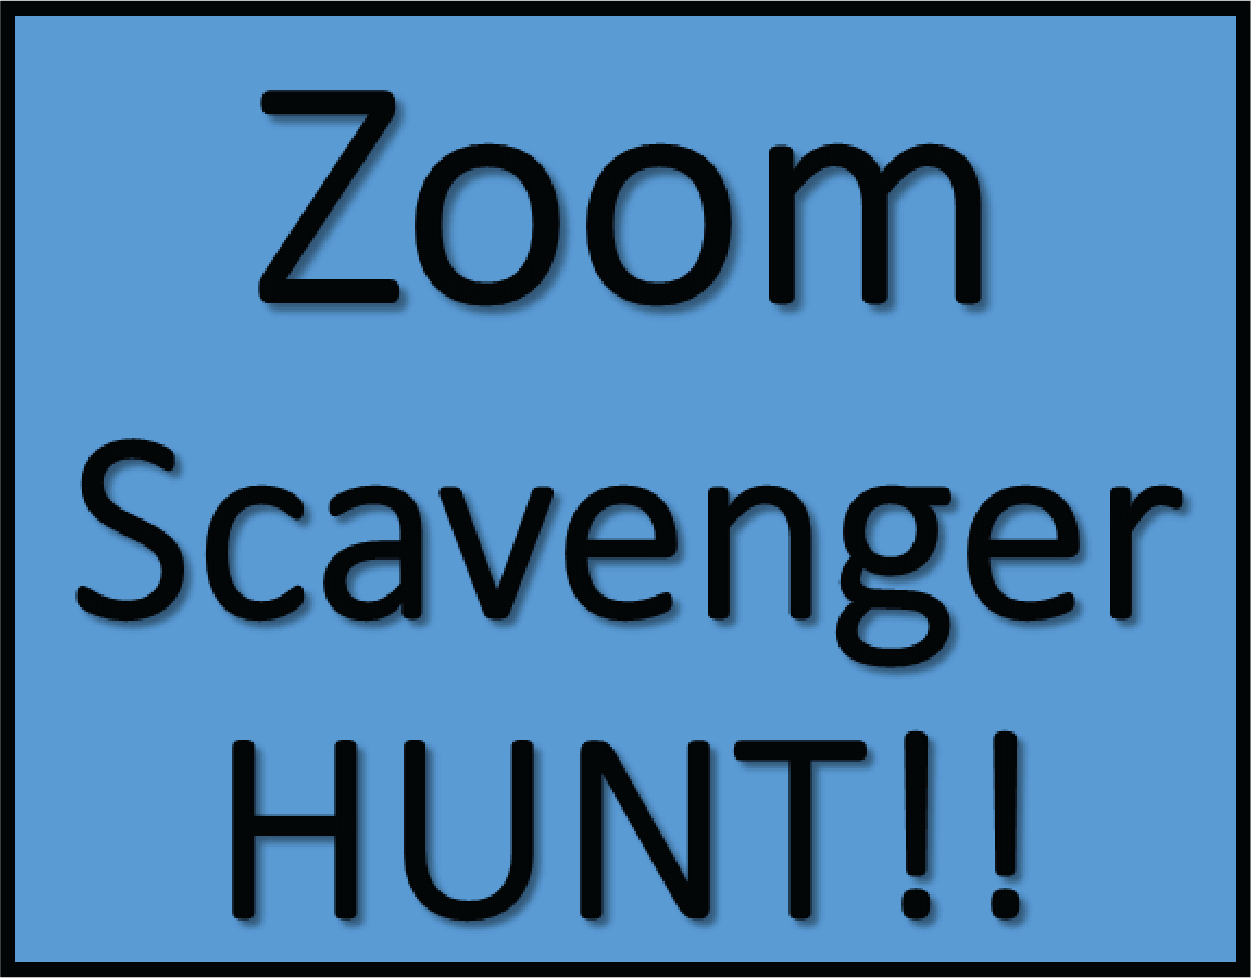 Zoom Scavenger Hunt